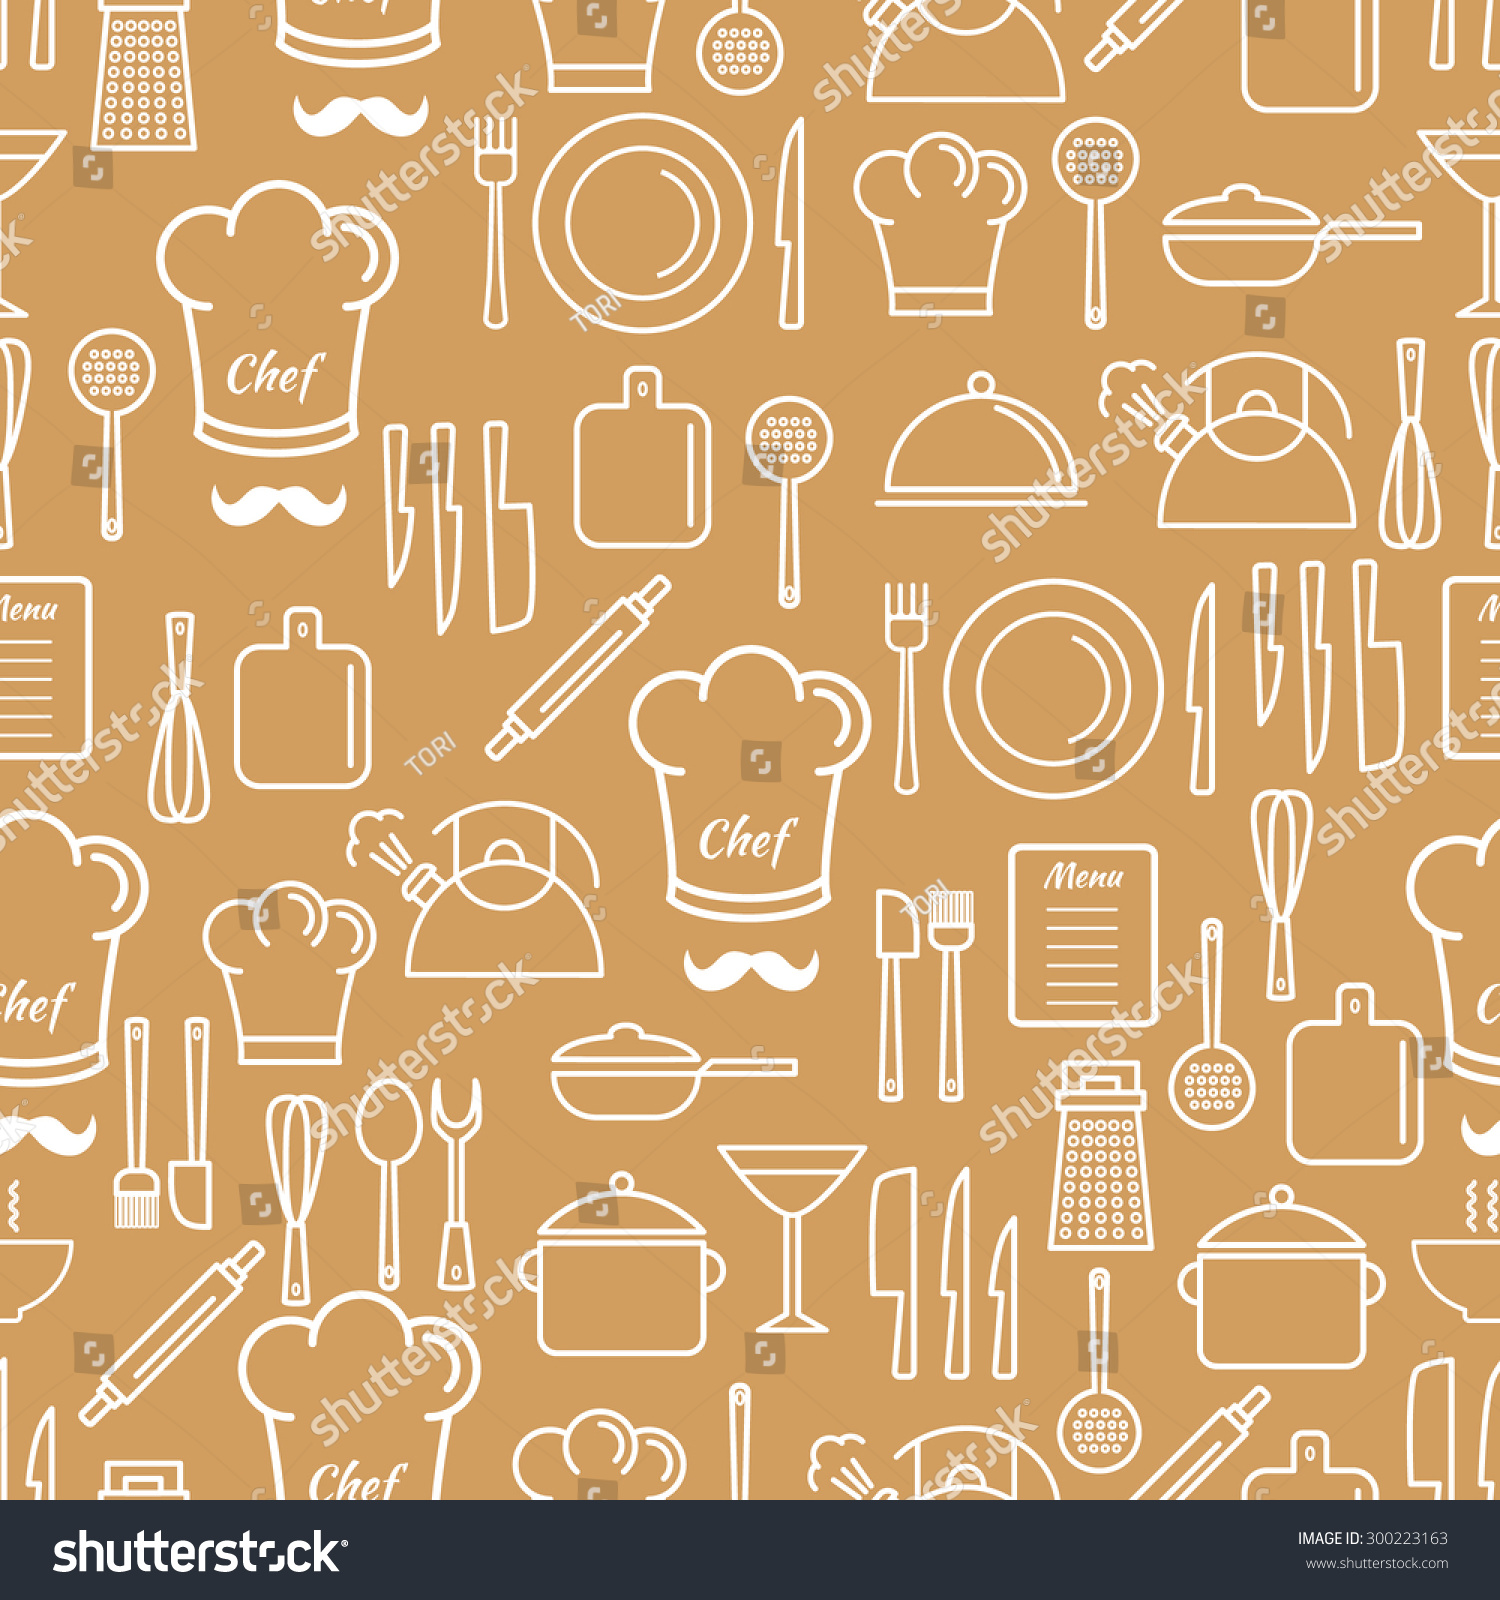 Kitchen Background Design: Cooking Utensil Line Icons Seamless Pattern.Linear Design